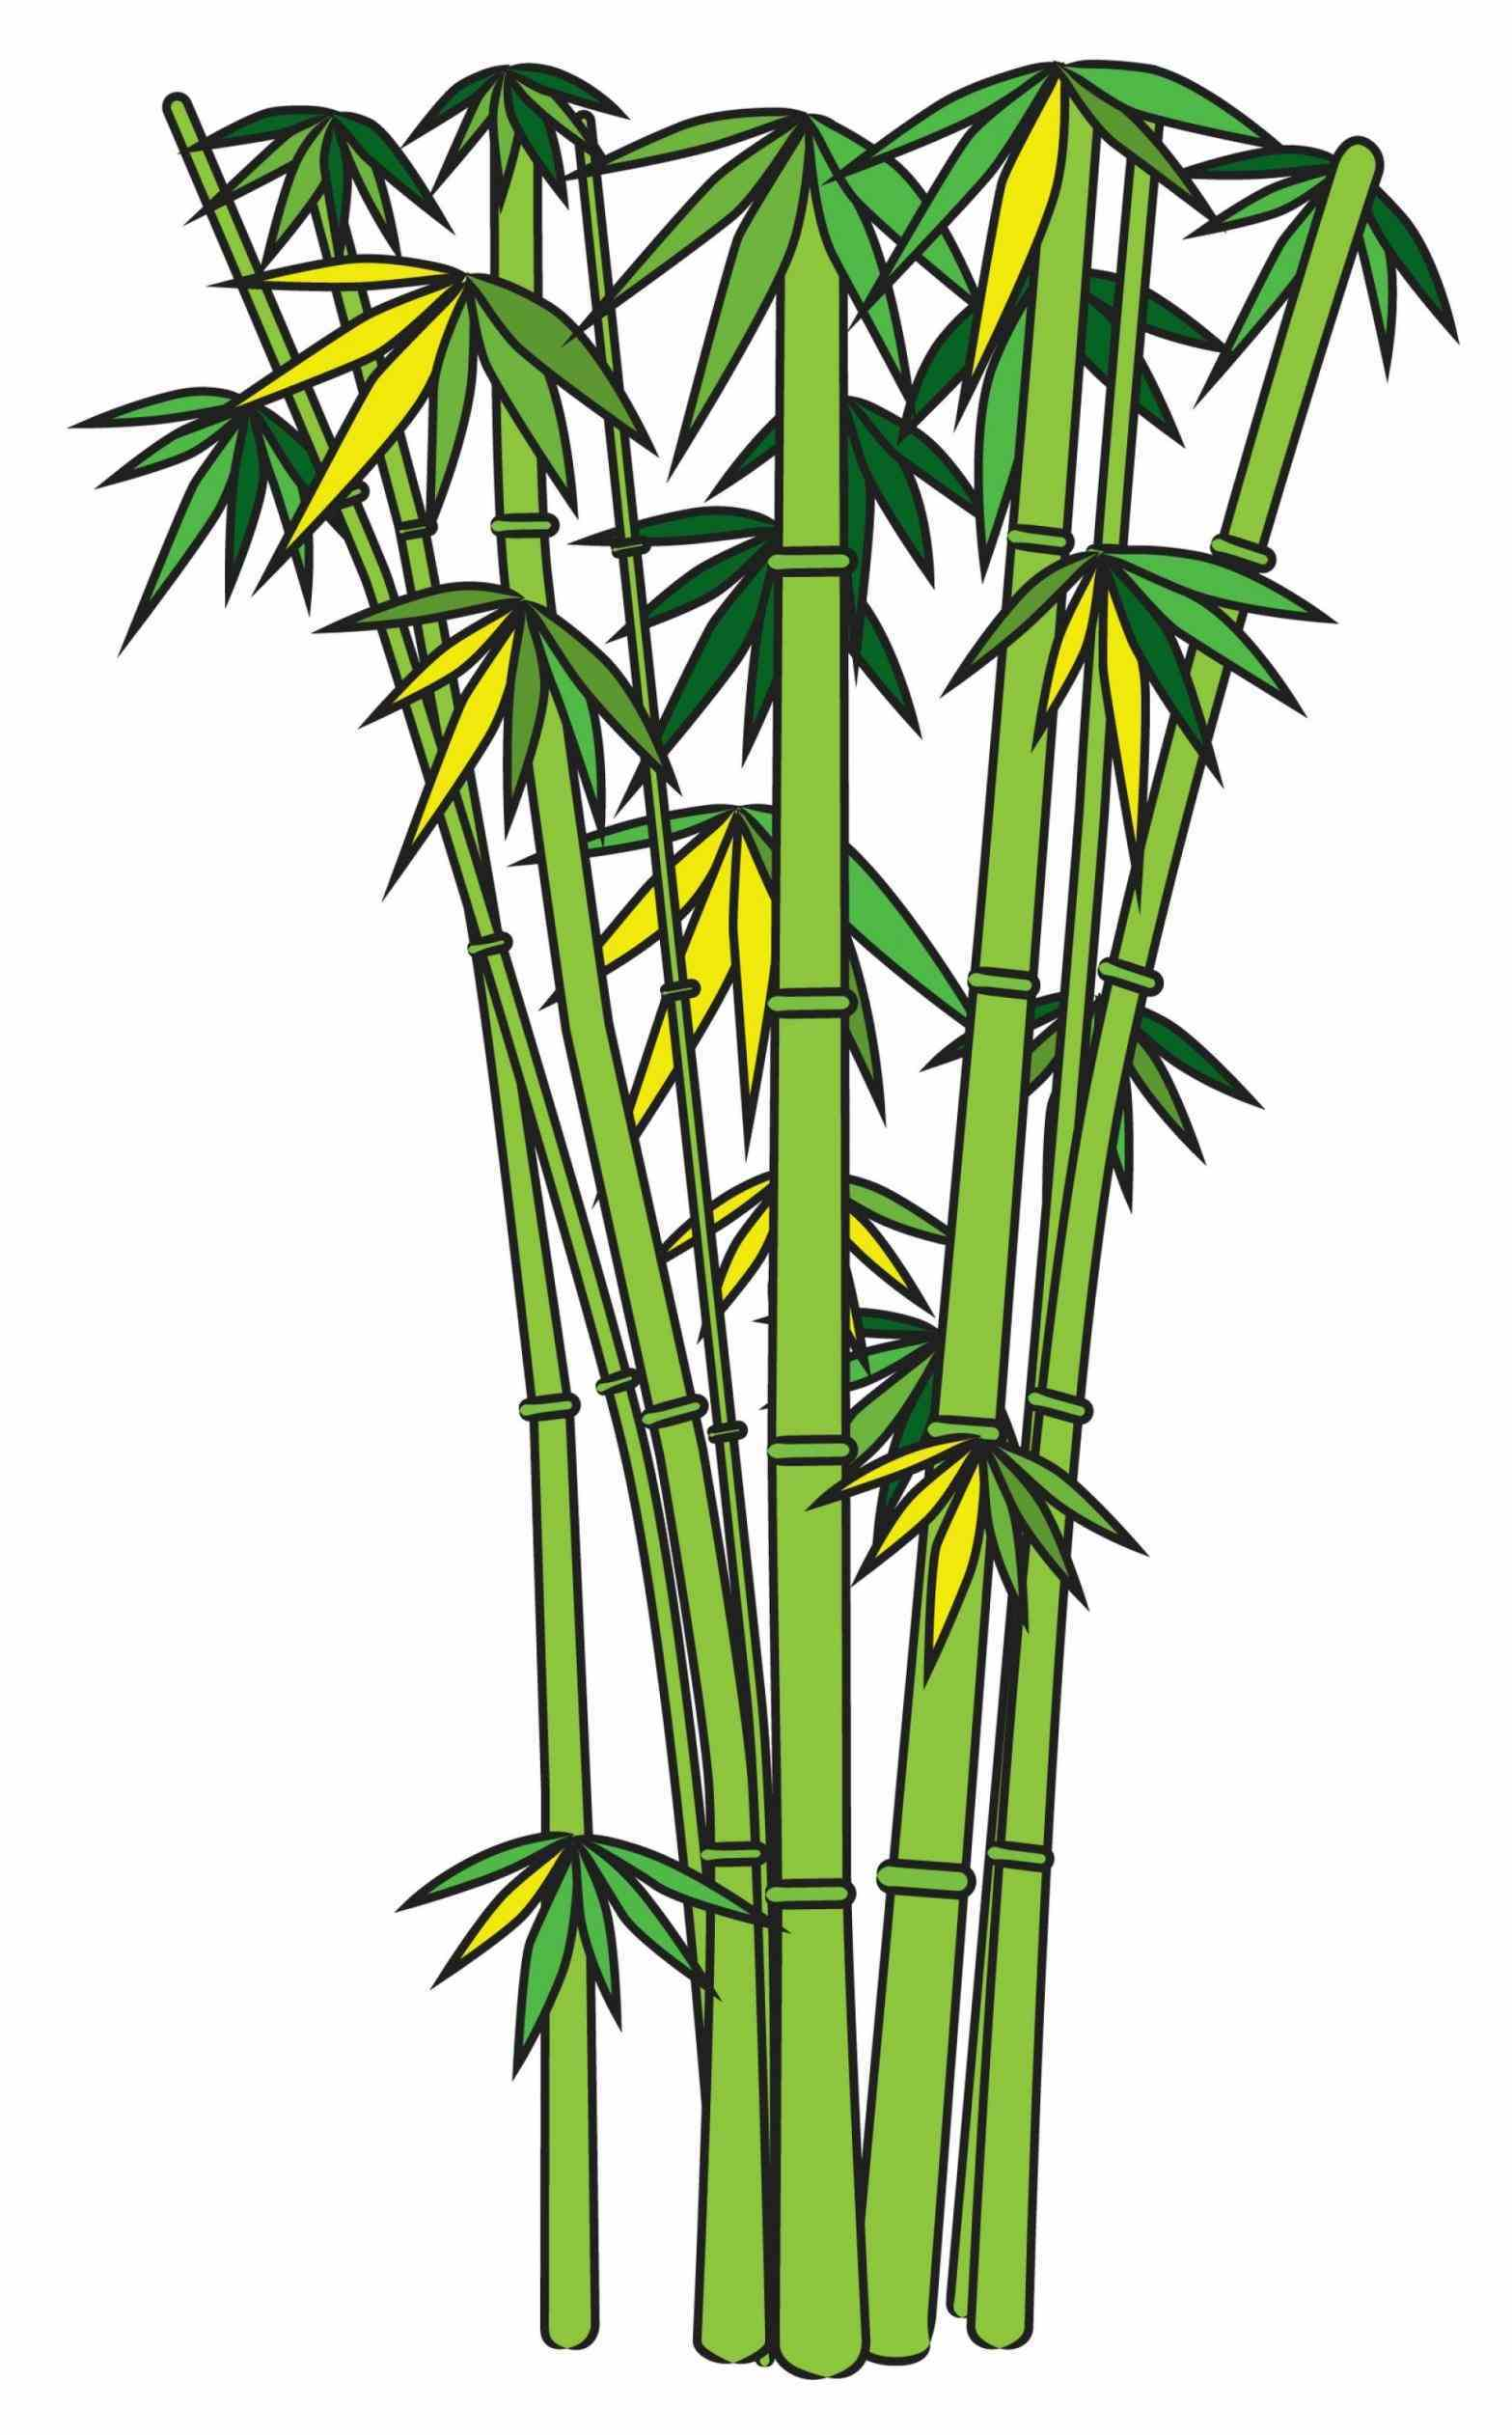 bamboo clipart at getdrawings com free for personal use bamboo rh getdrawings com bamboo images clip art bamboo clipart design